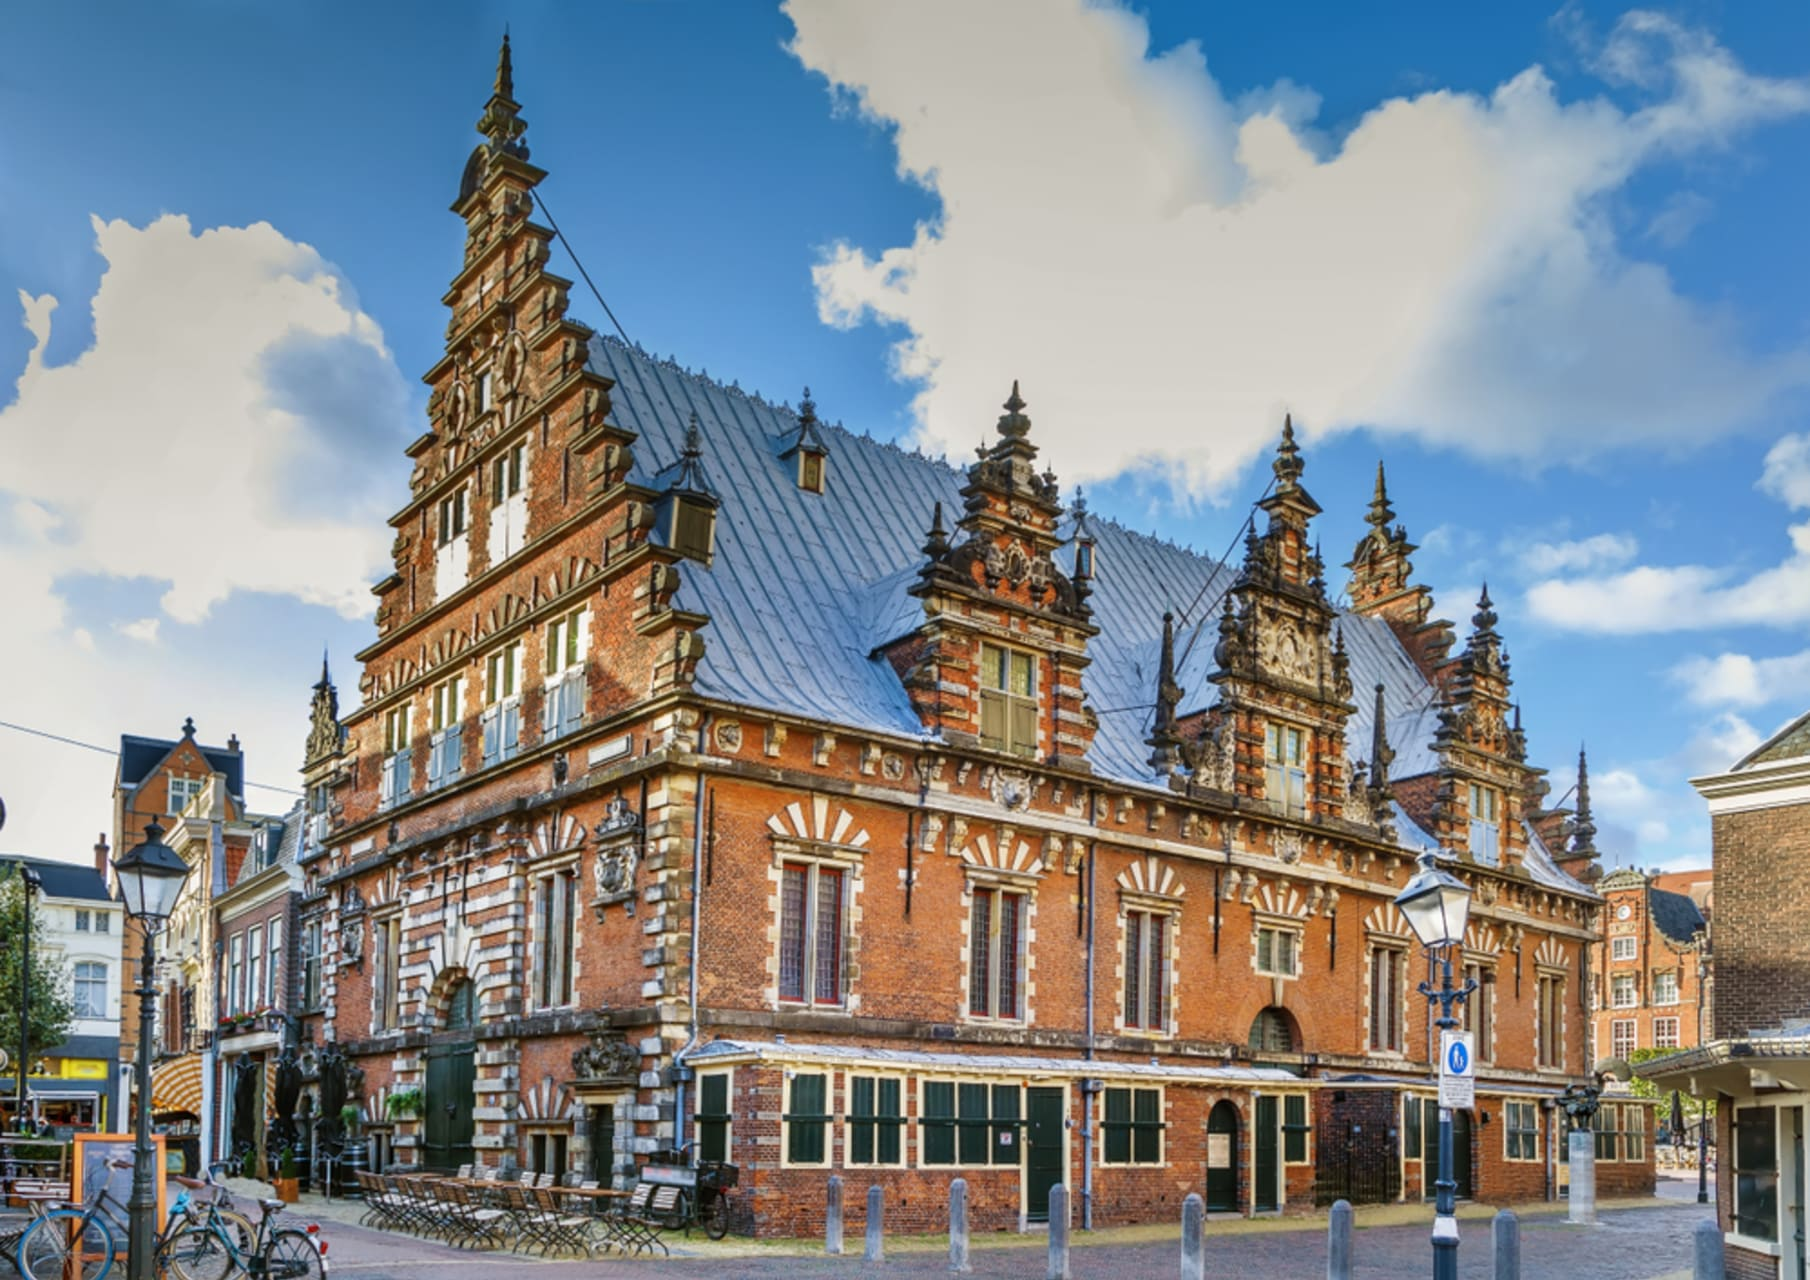 Haarlem - The Grote Markt – Town Square